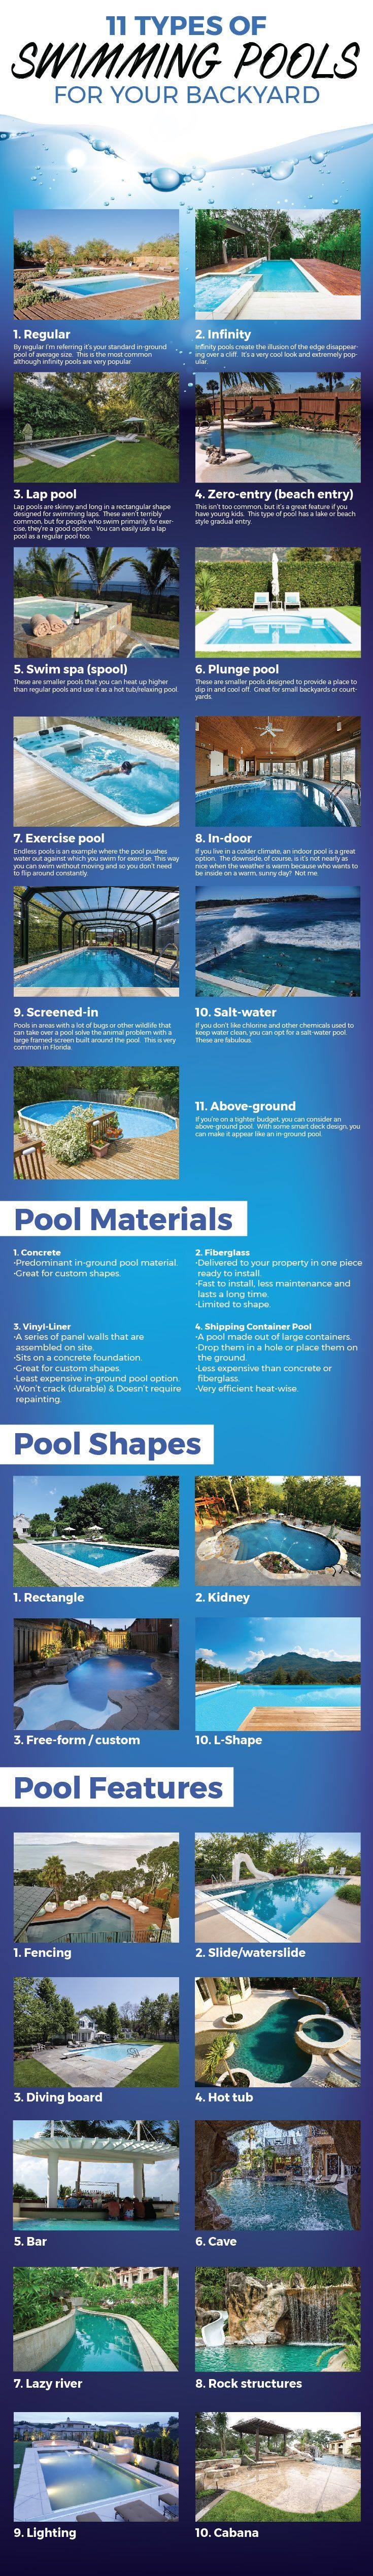 101 Swimming Pool Designs And Types Photos Swimming Pool Designs Backyard Pool Pool Landscape Design